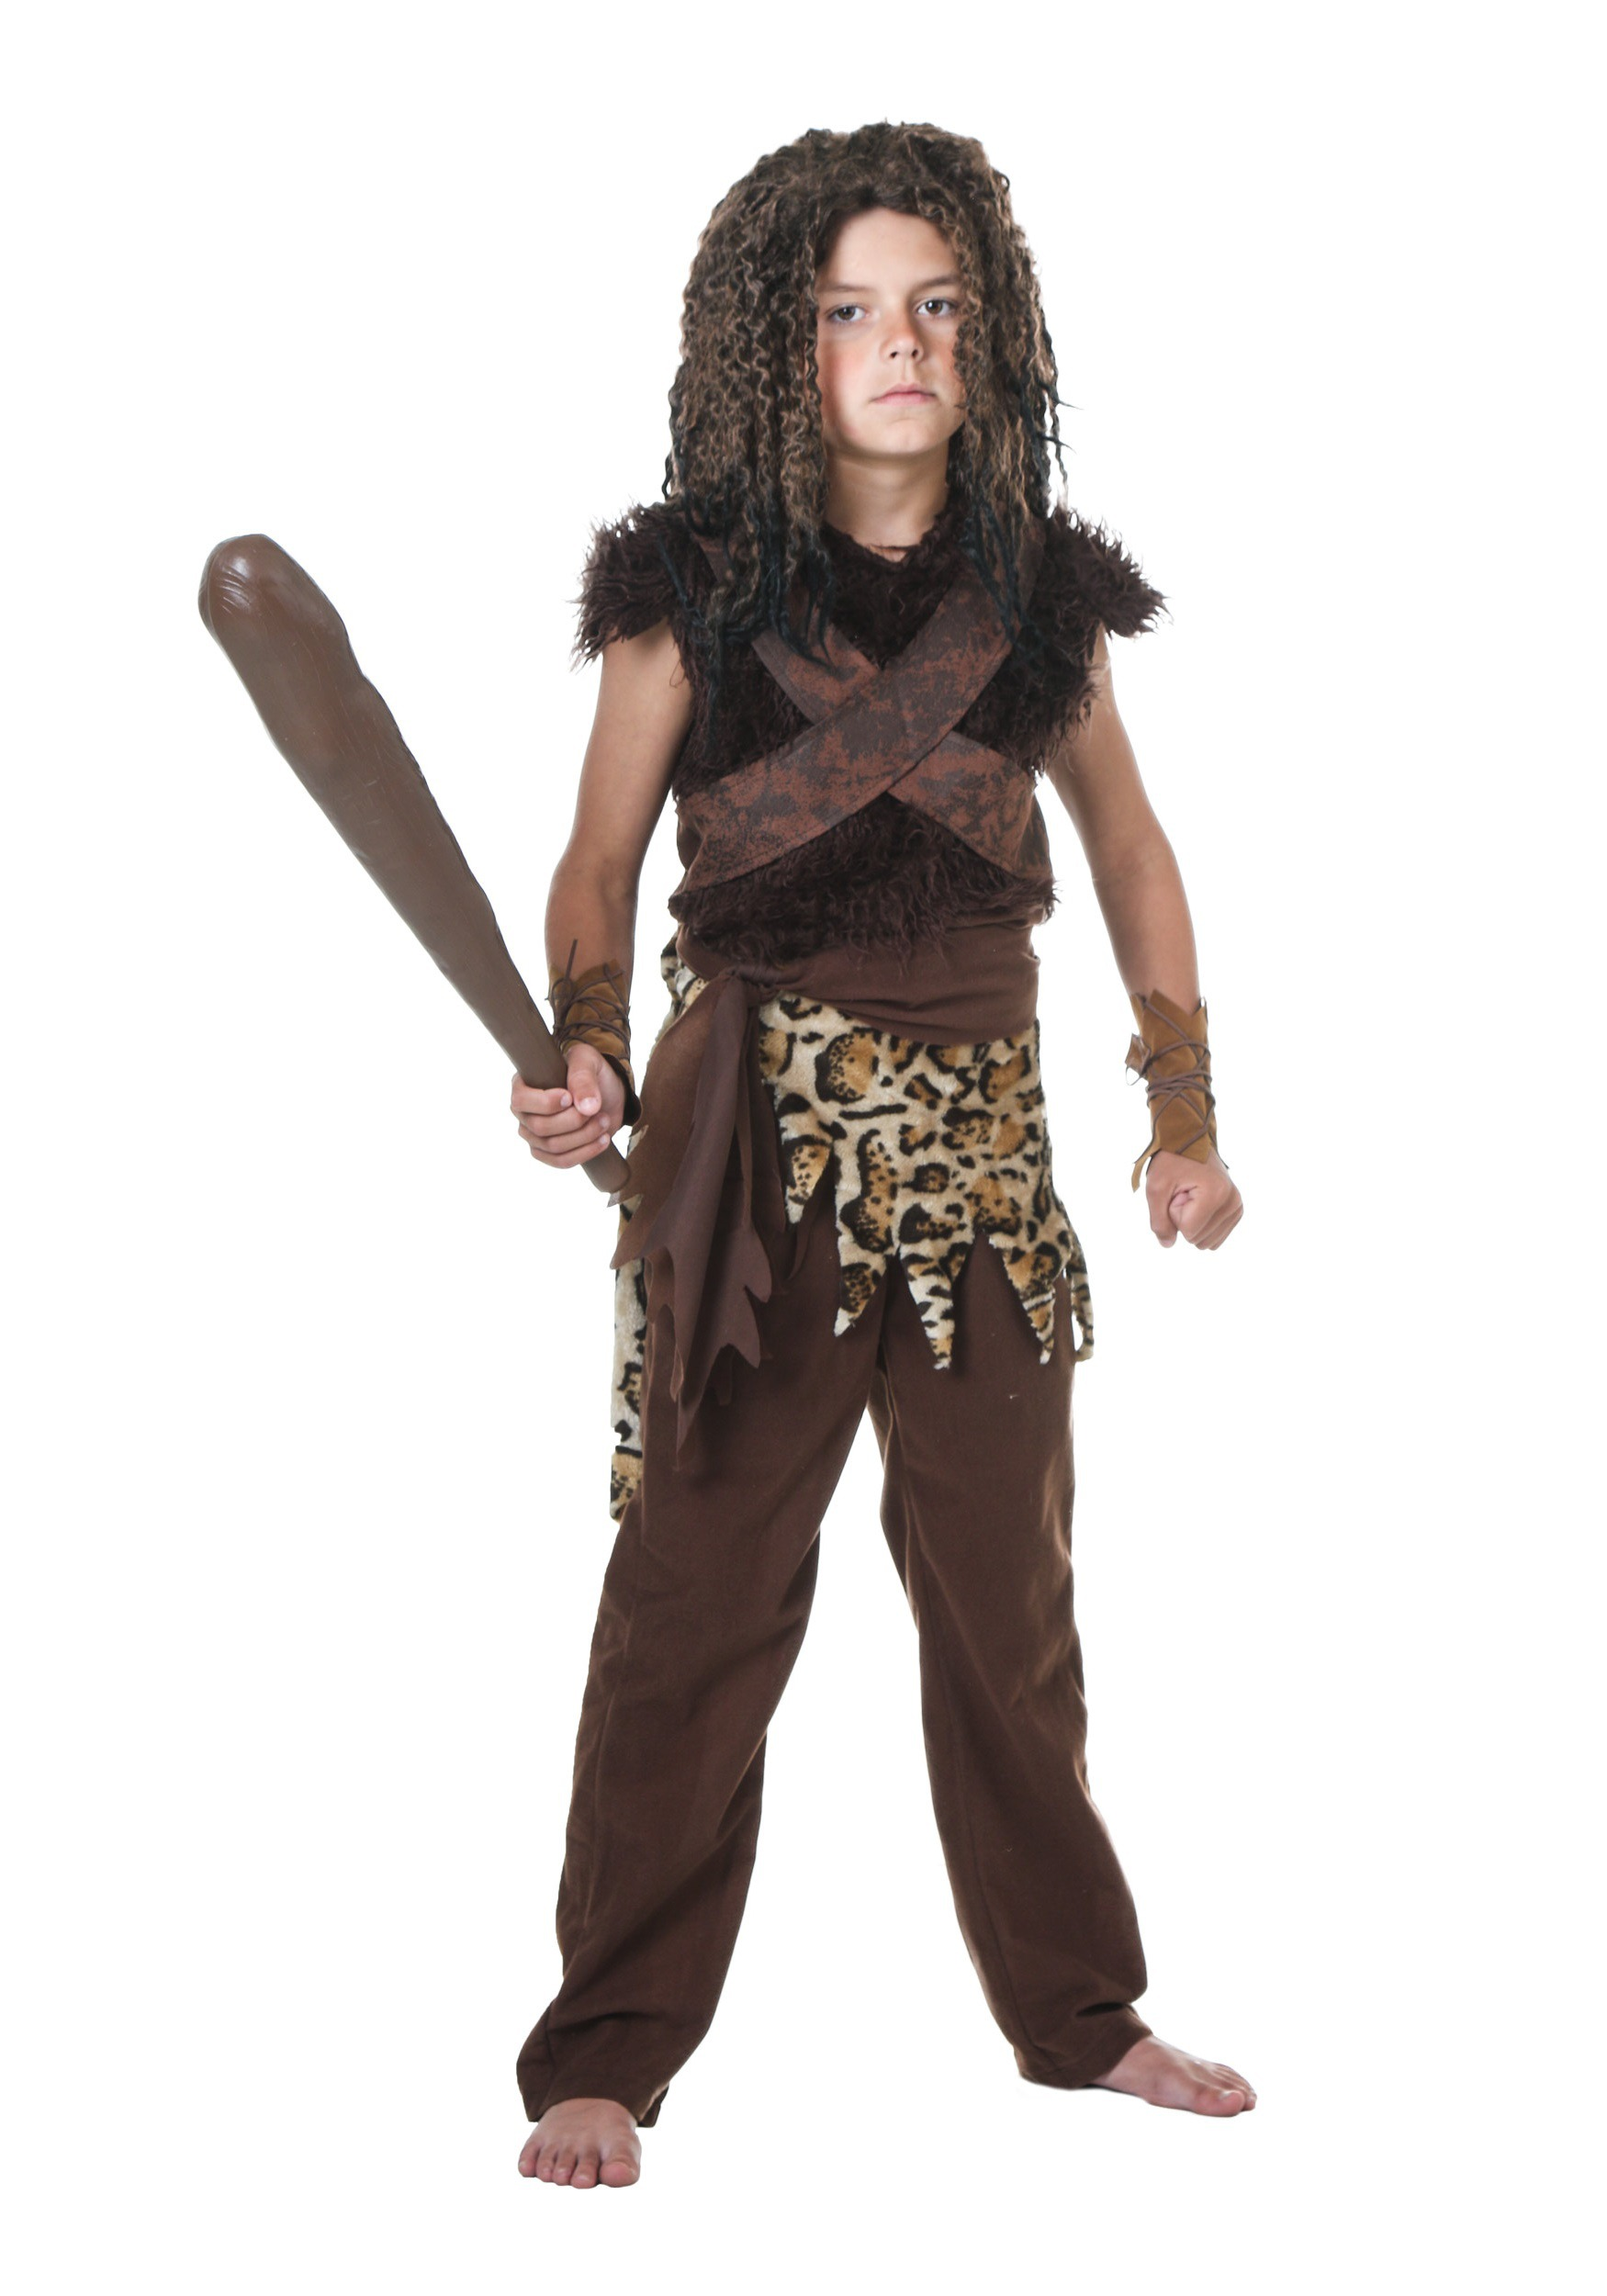 sc 1 st  Halloween Costumes : stone age costume ideas  - Germanpascual.Com